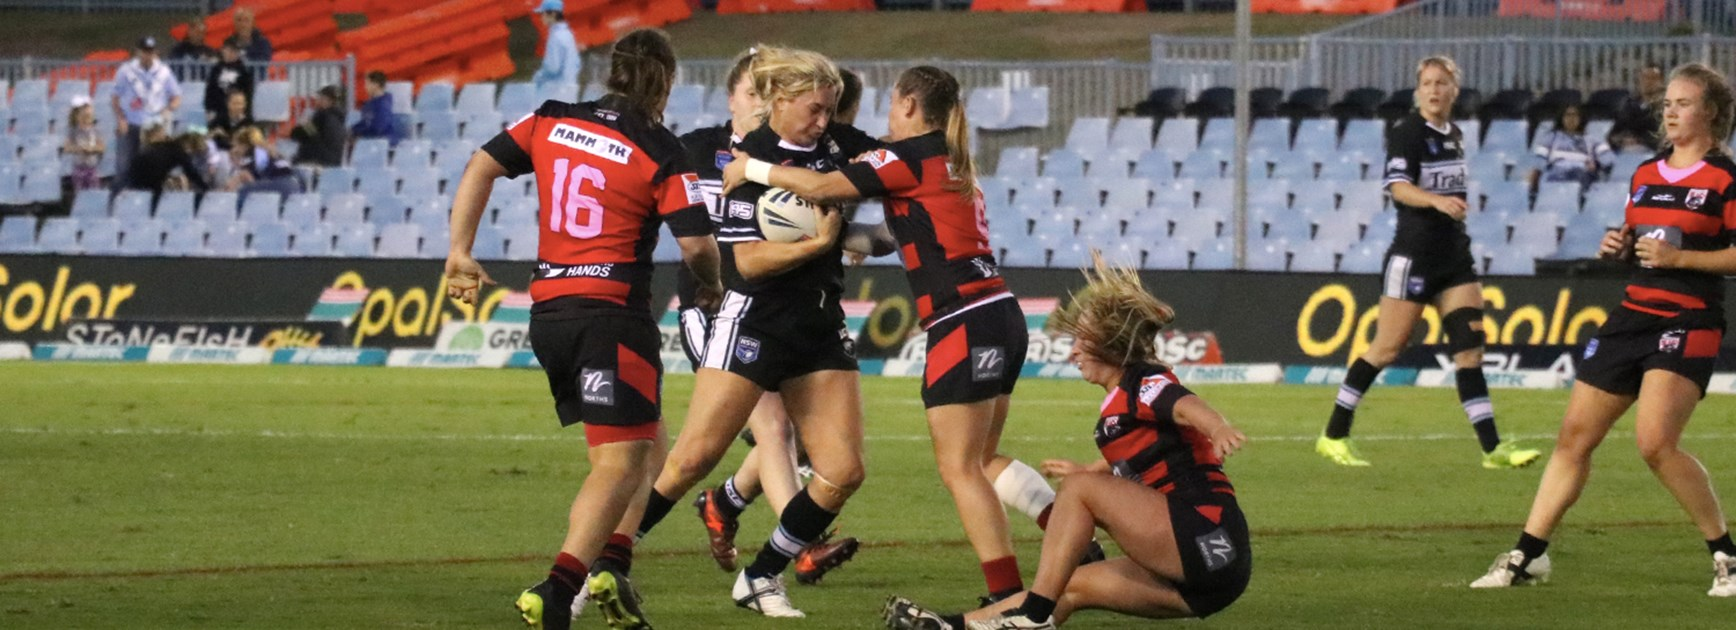 Clinical Sharks girls too strong for the Bears